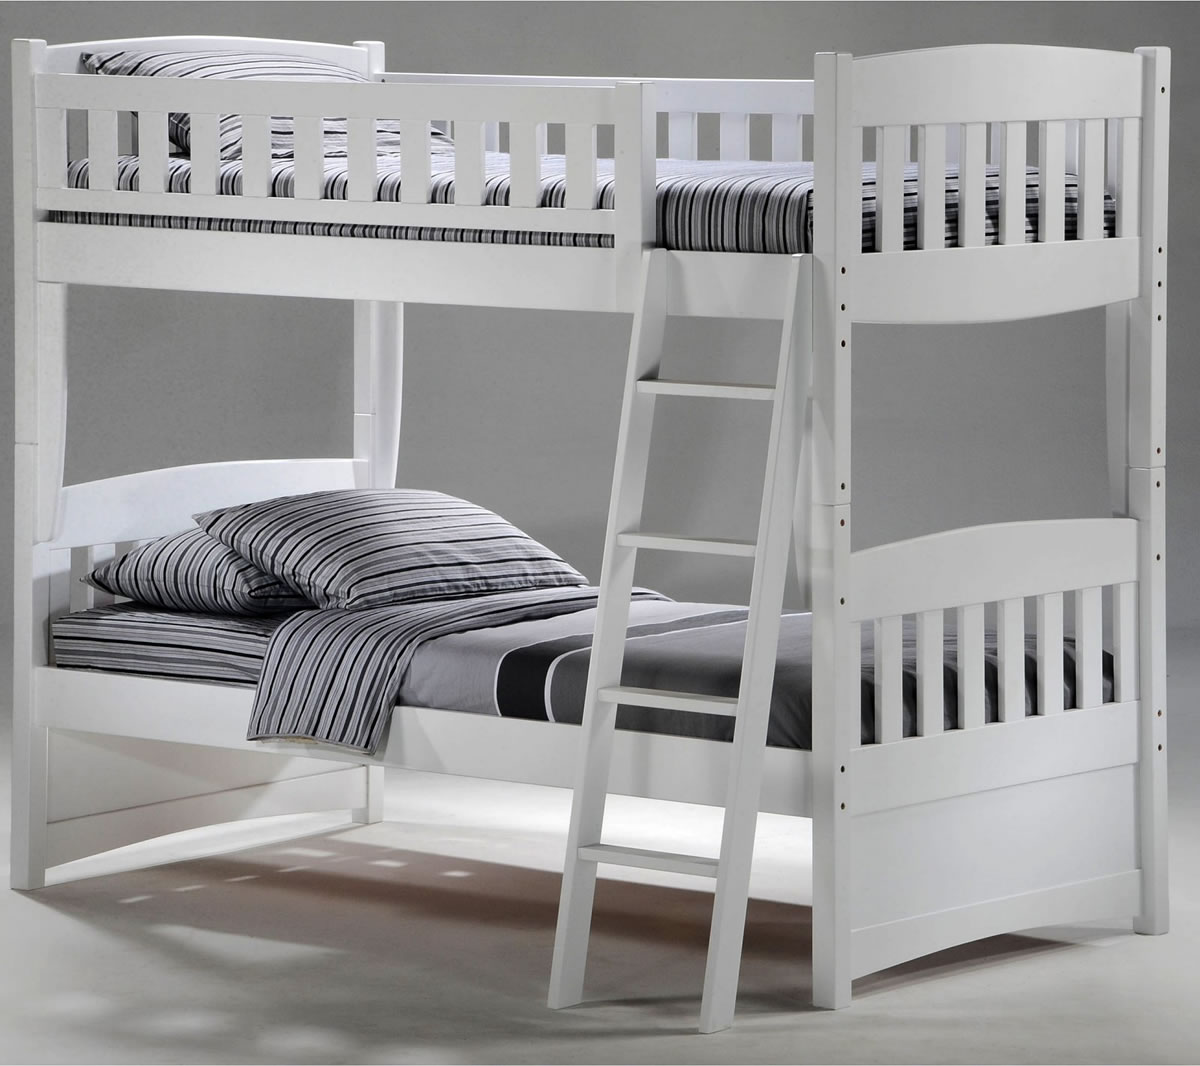 Twin bunk beds white - Cinnamon Bunk Bed In White